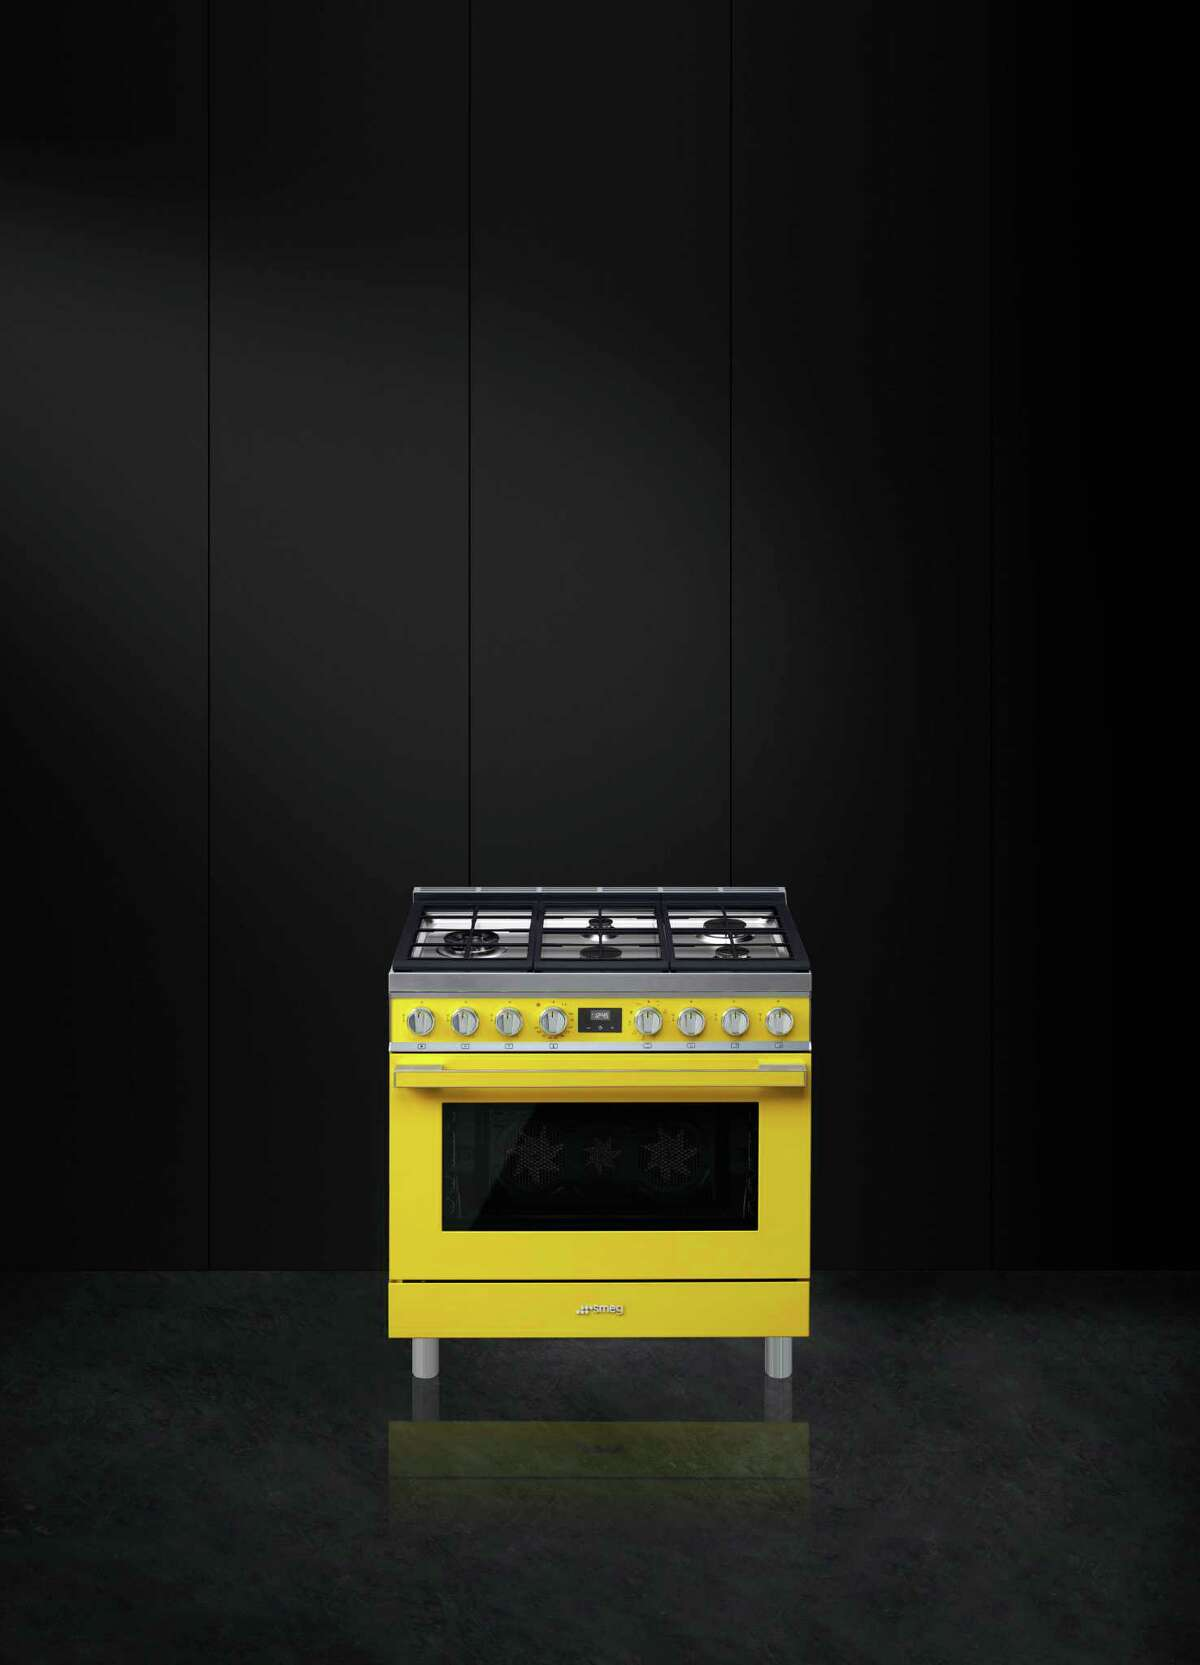 Smeg brand appliances now come in bright colors such as this yellow range. this year they'll launch a liine of matching range hoods that will sell for $3,999 ($3,499 for the stainless steel version).